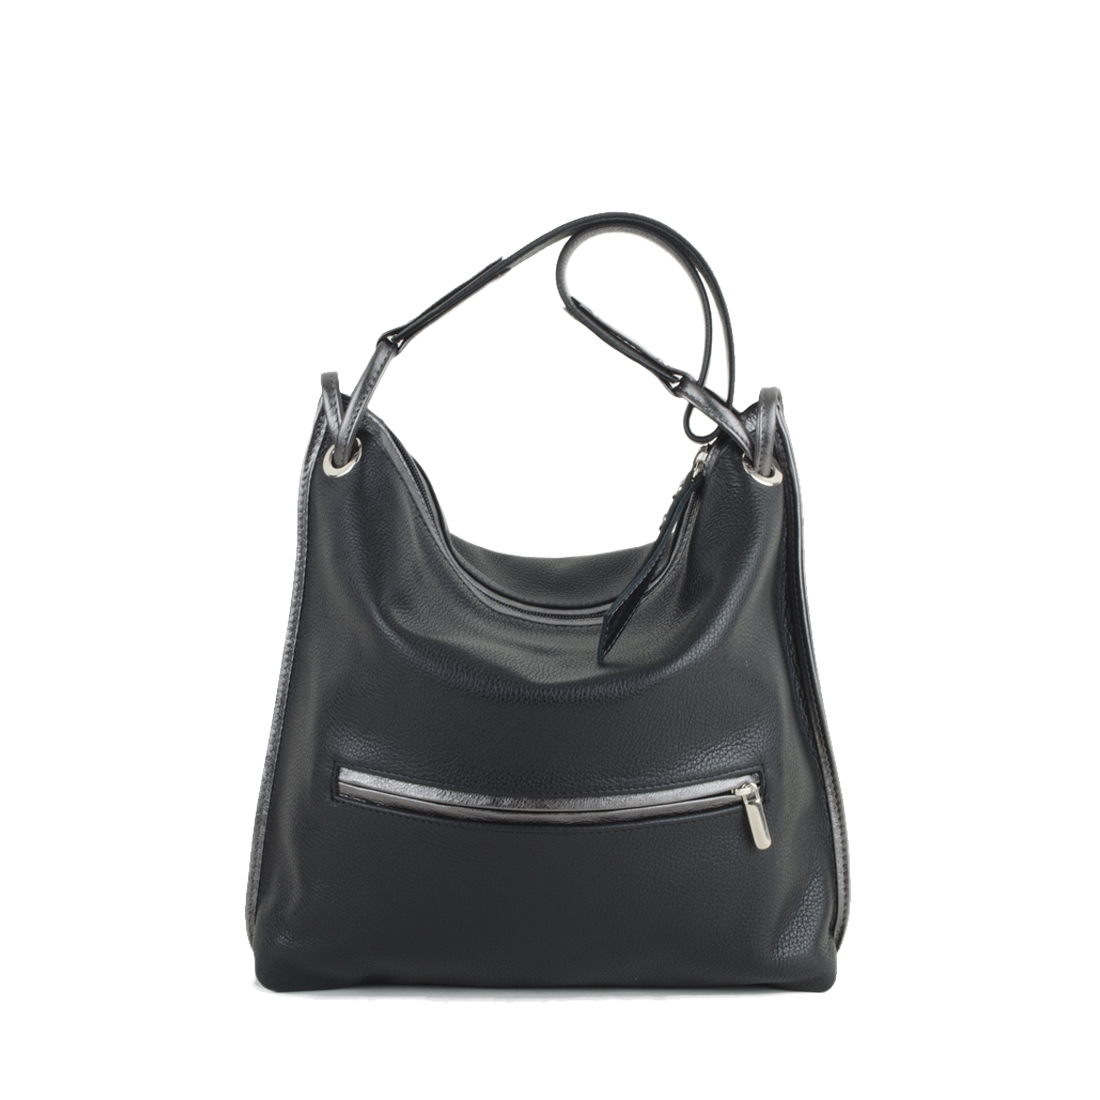 Maria Black Leather Shoulder Bag